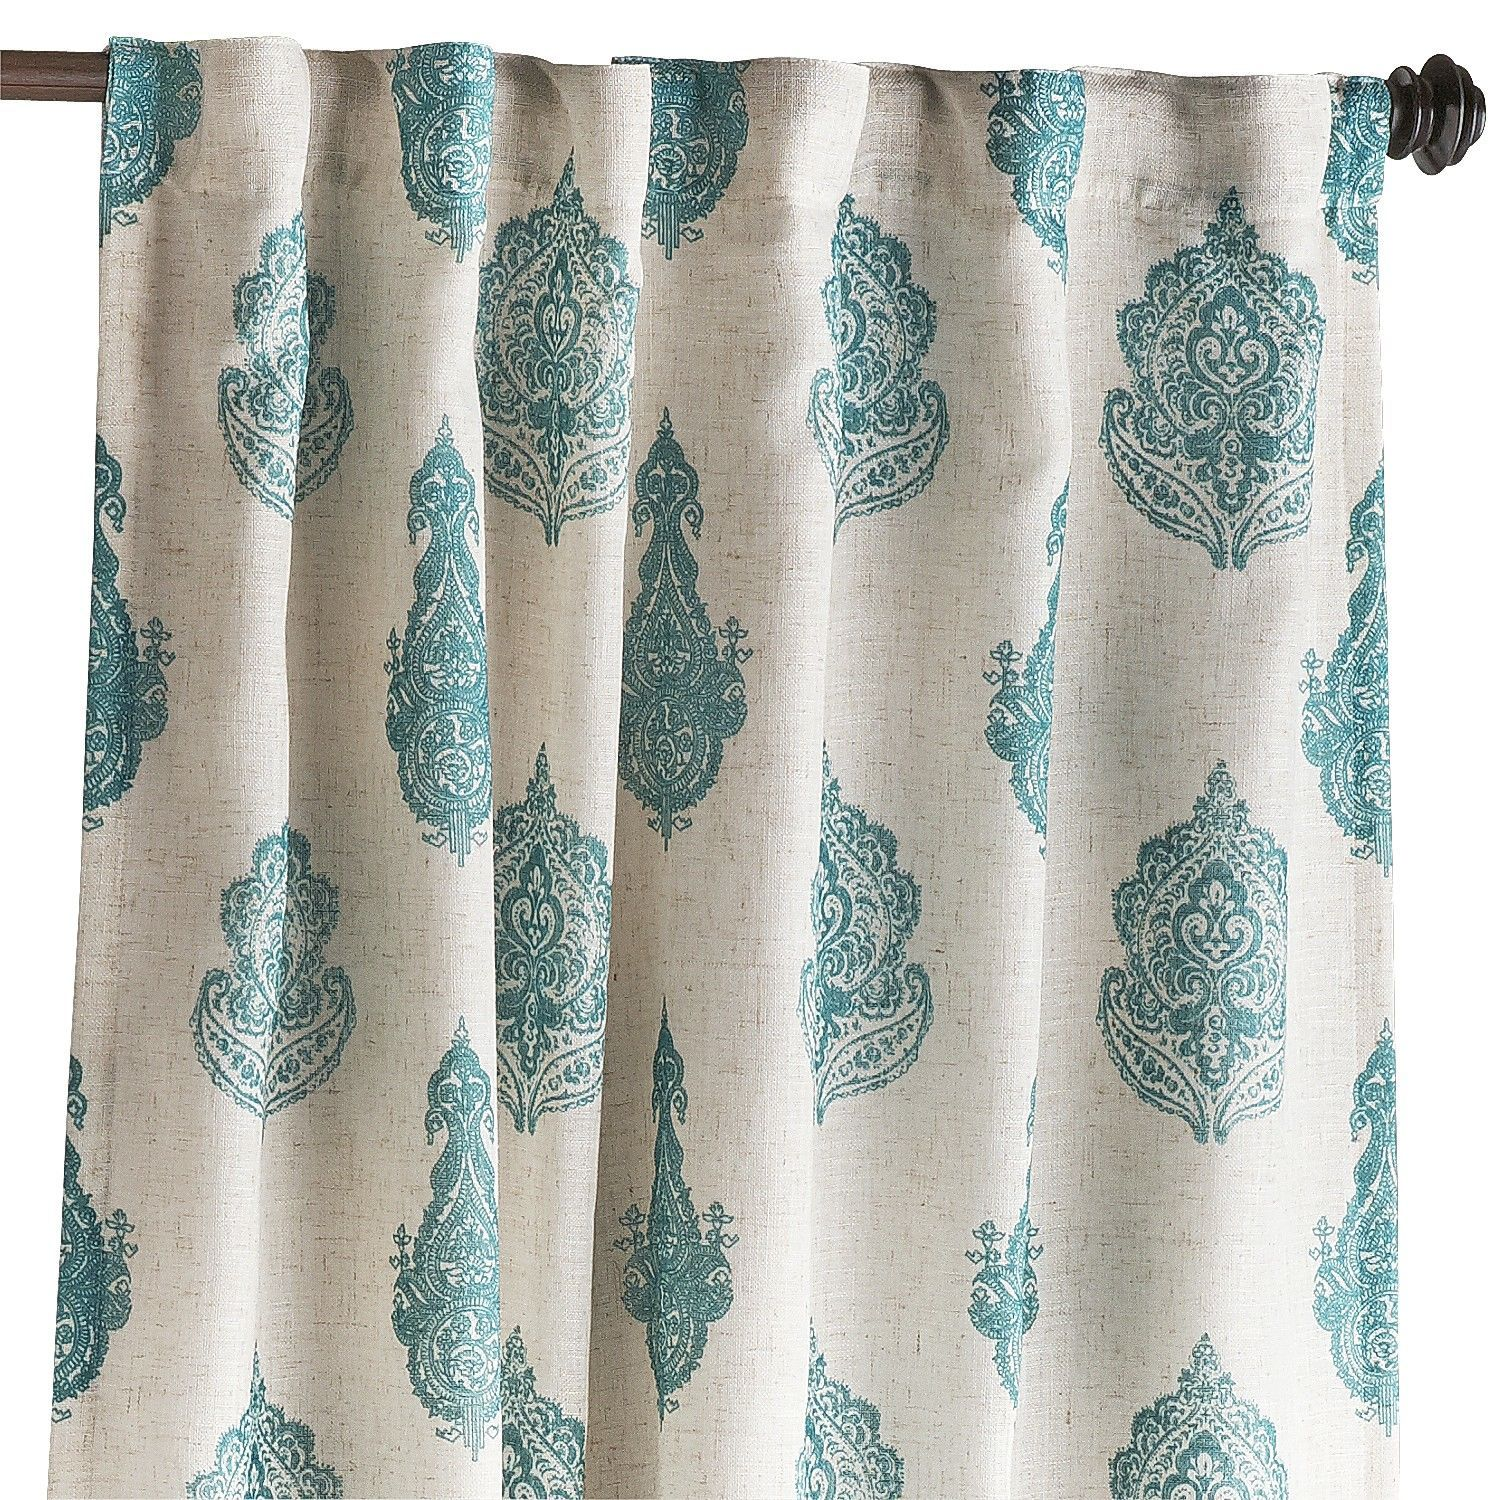 Teal Bedroom Curtains Rambagh Paisley Teal Curtain Paisley Curtains Pier 1 Imports